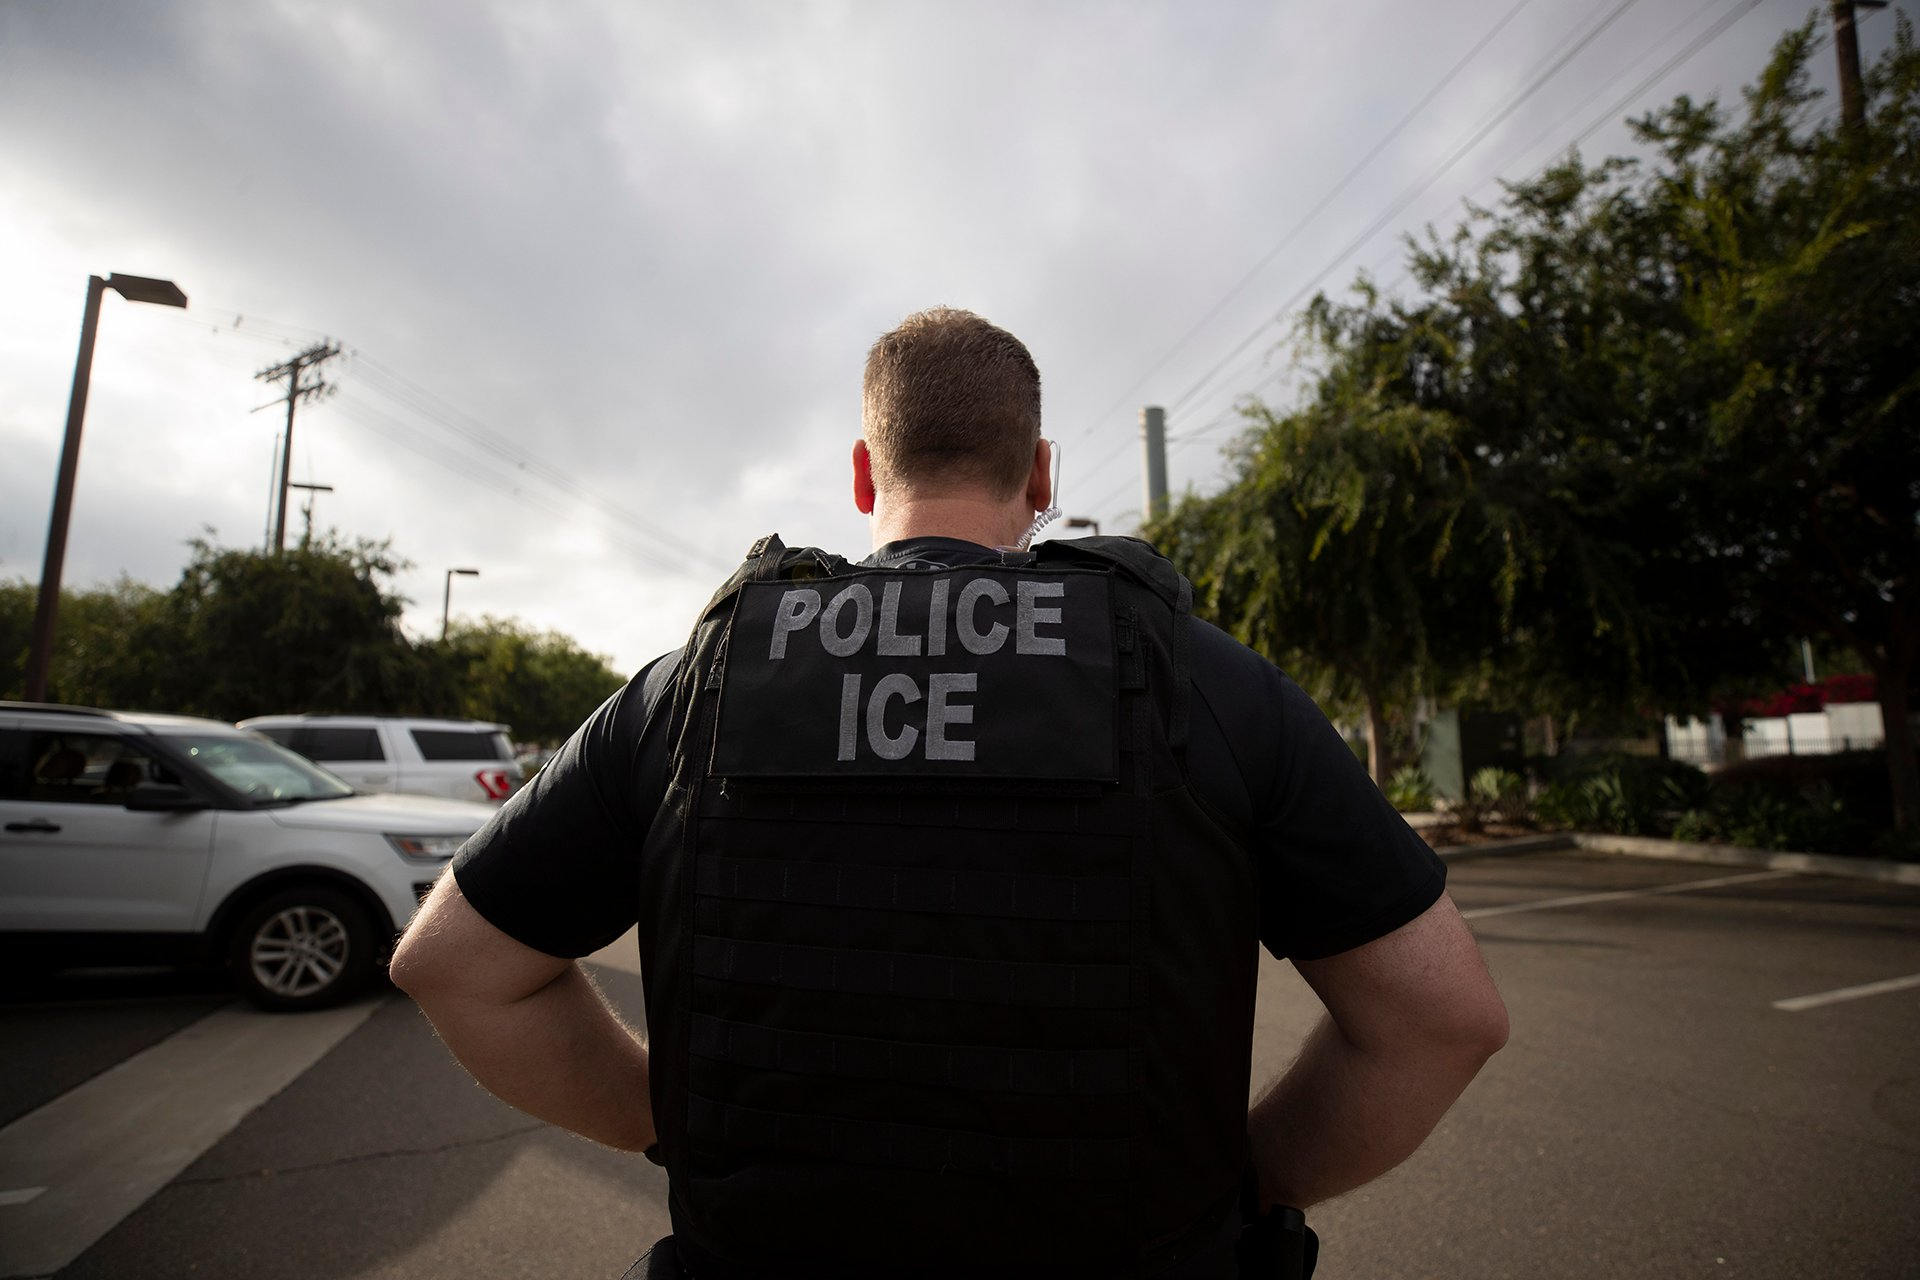 In this July 8, 2019, file photo, a U.S. Immigration and Customs Enforcement officer looks on during an operation in Escondido, California. (AP Photo / Gregory Bull, File)